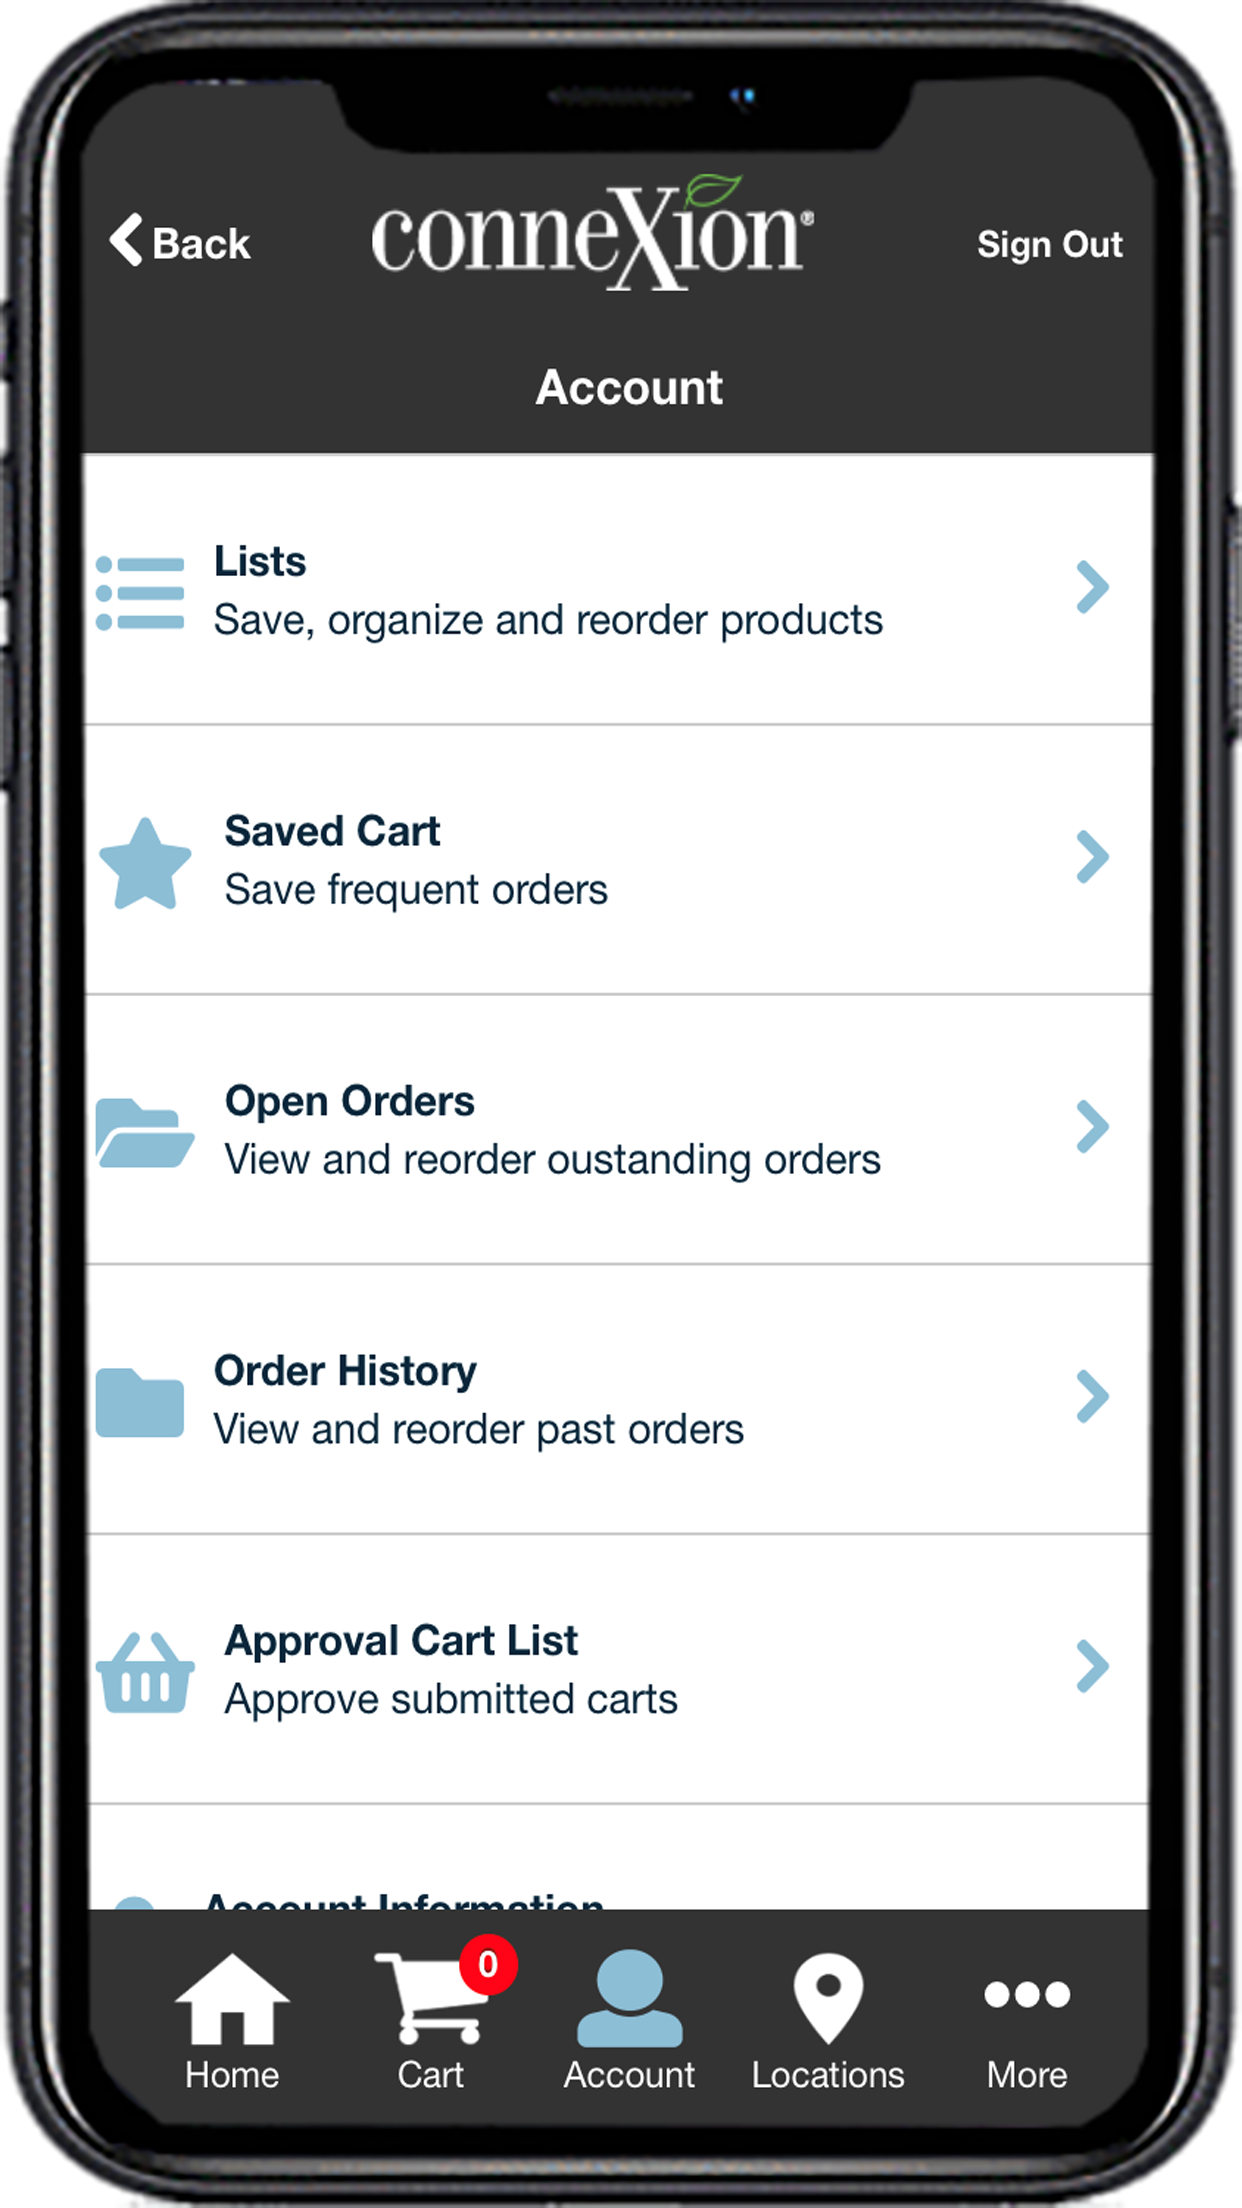 Manage saved lists and carts with ease